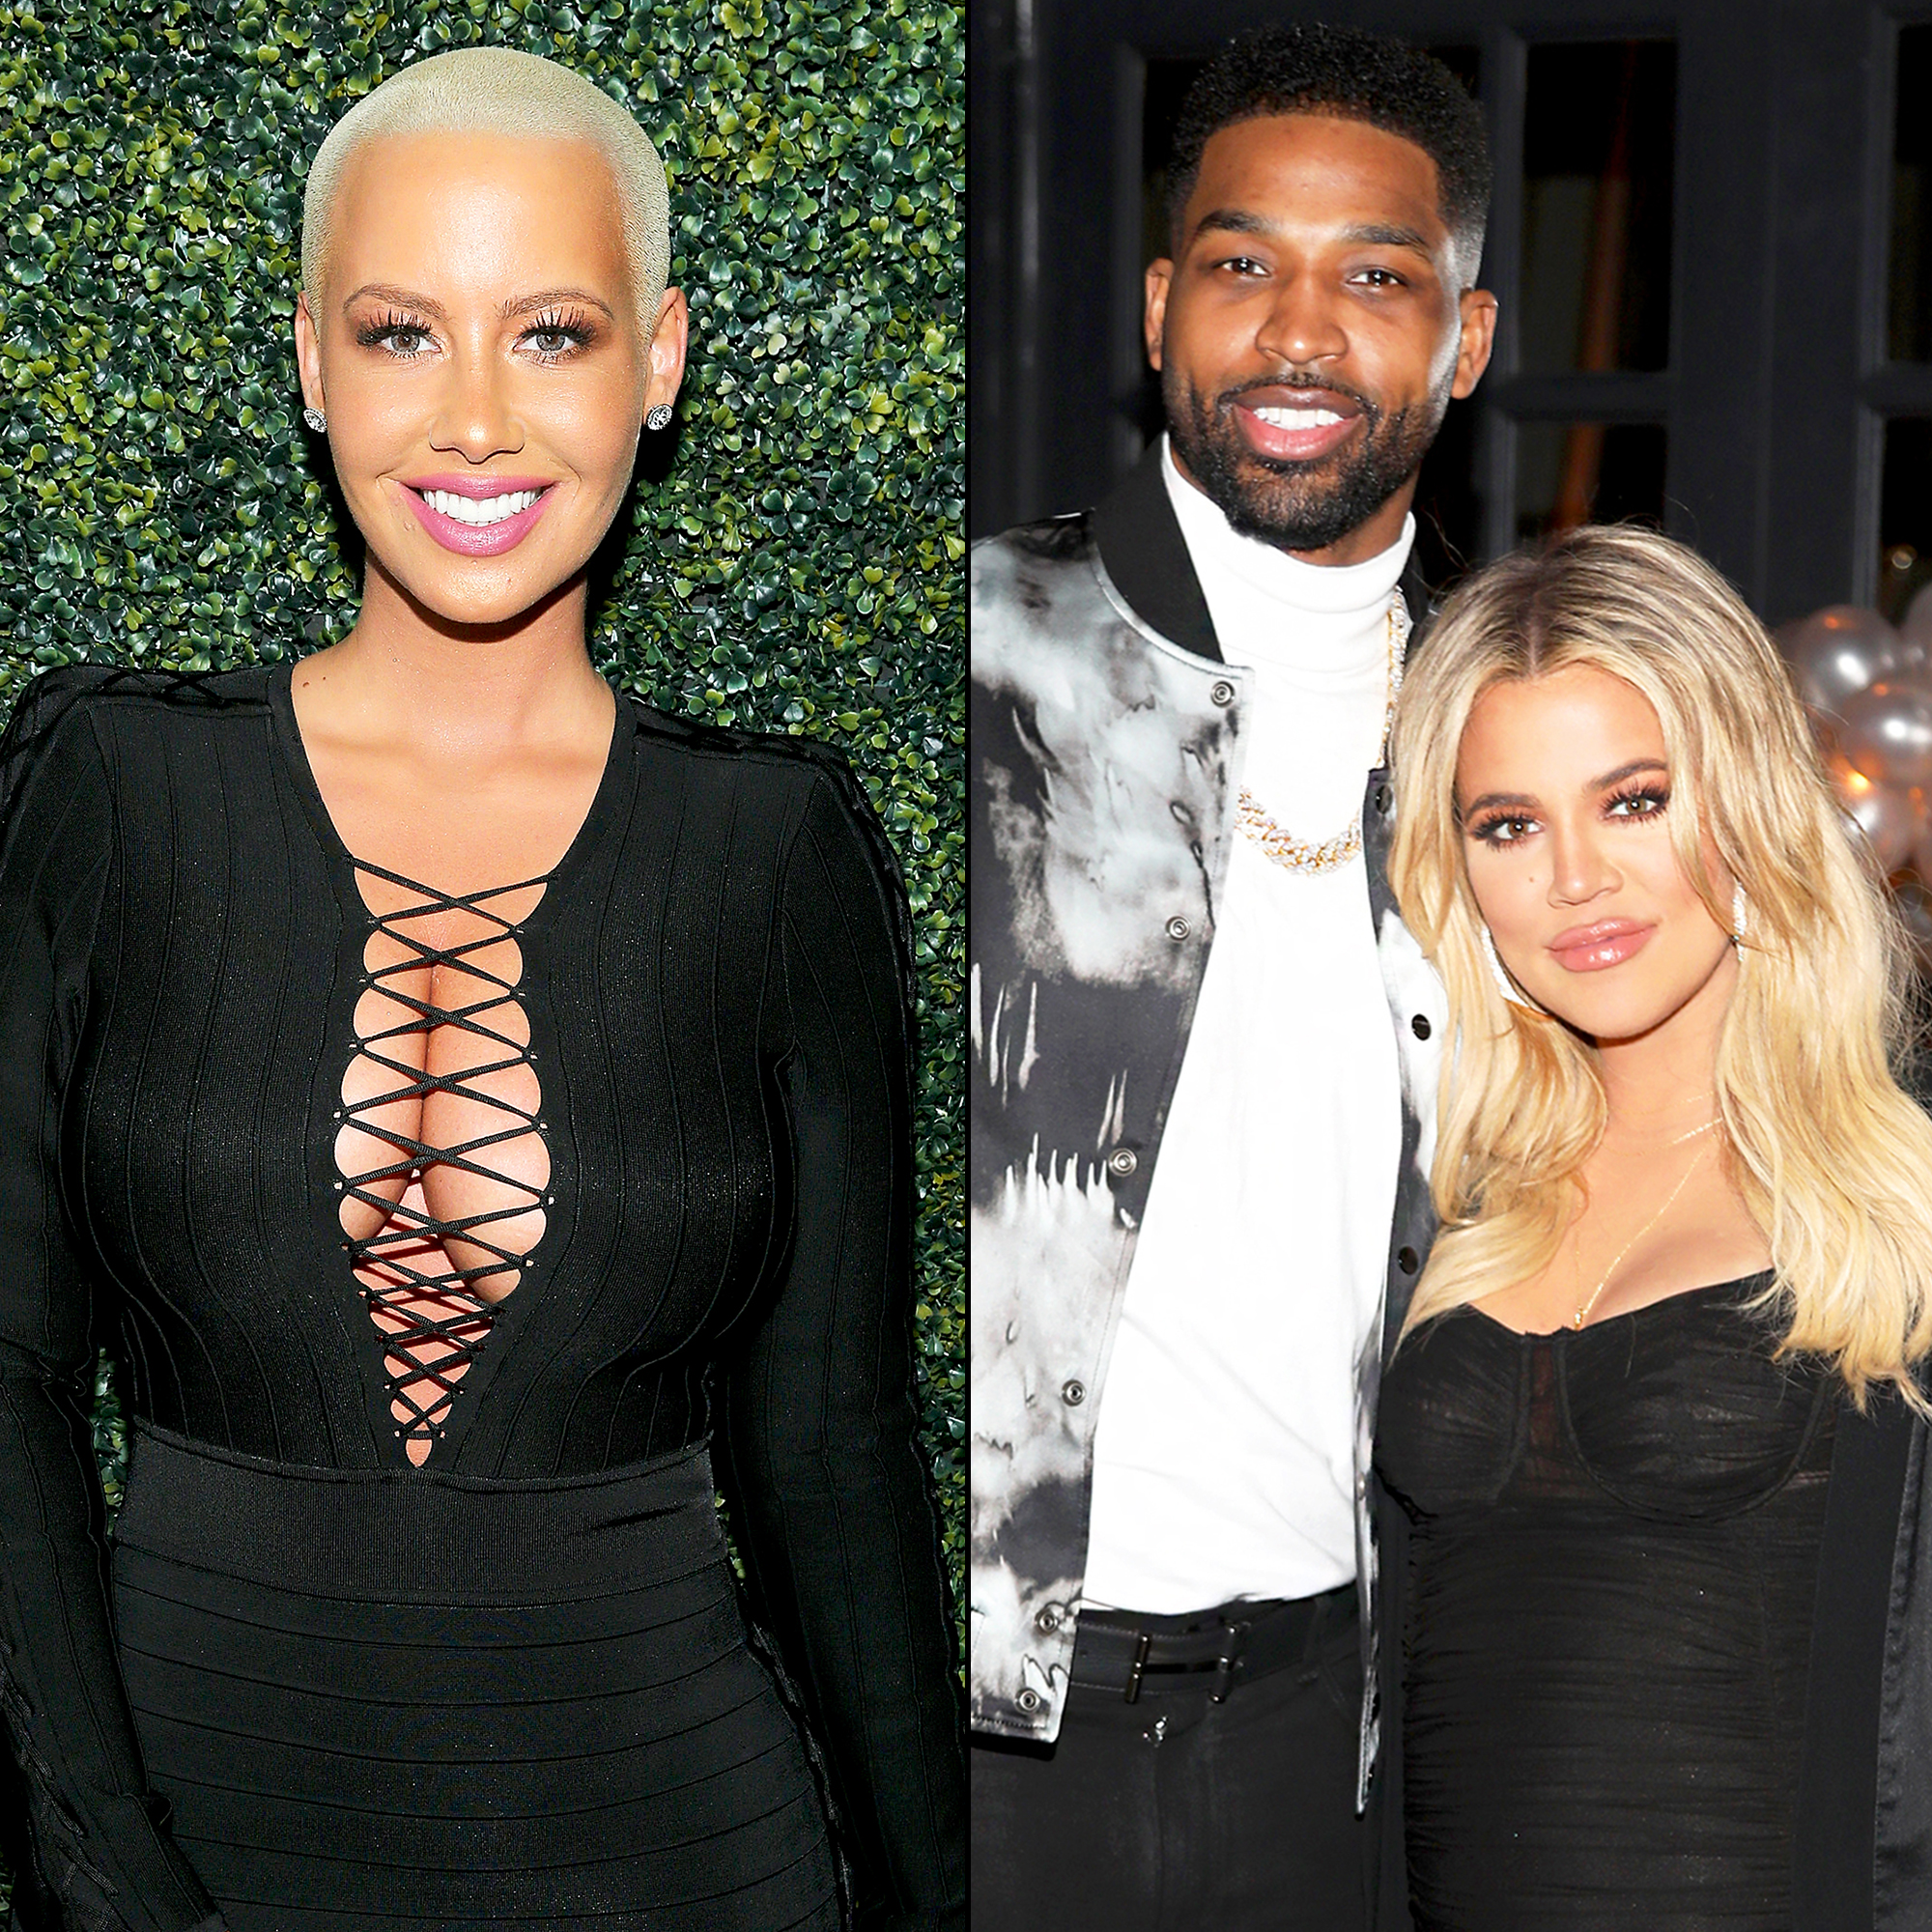 Kardashians 'Rallying Around' Khloe Amid Tristan Thompson Cheating Allegations